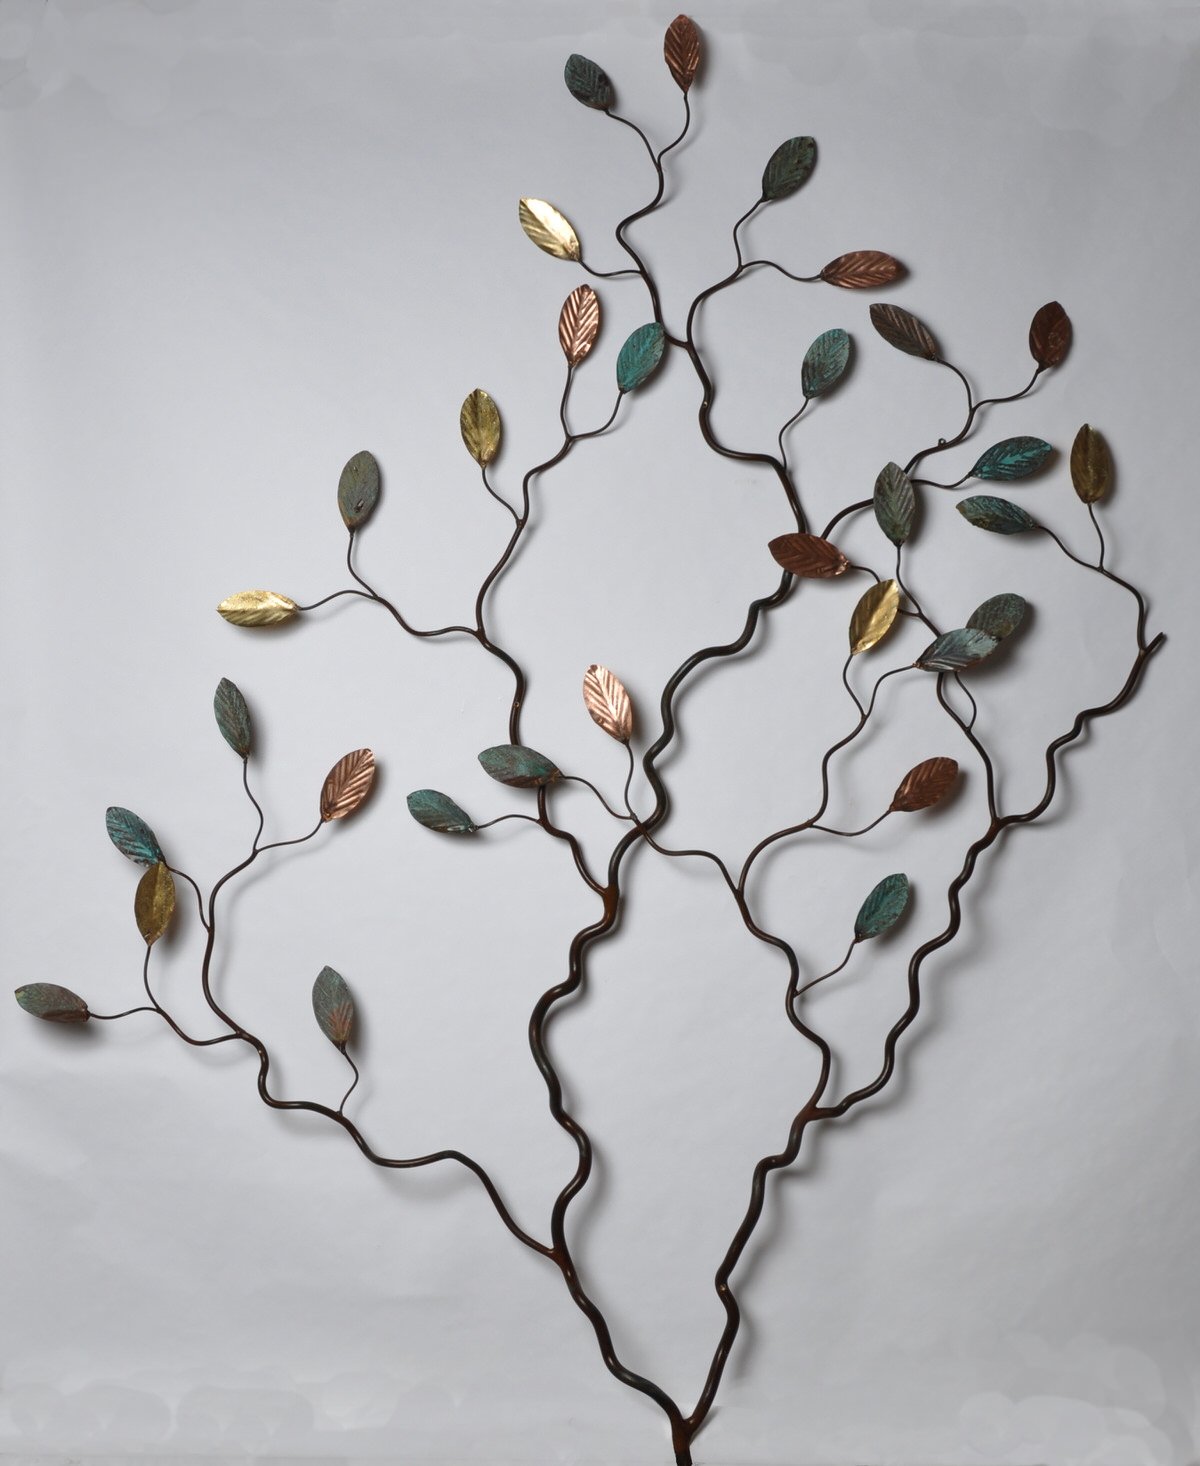 espalier tree wall sculpture  metal tree sculpture copper tree sculpture architect sculpture memorial tree sculpture hospital tree sculpture by Mark Reed